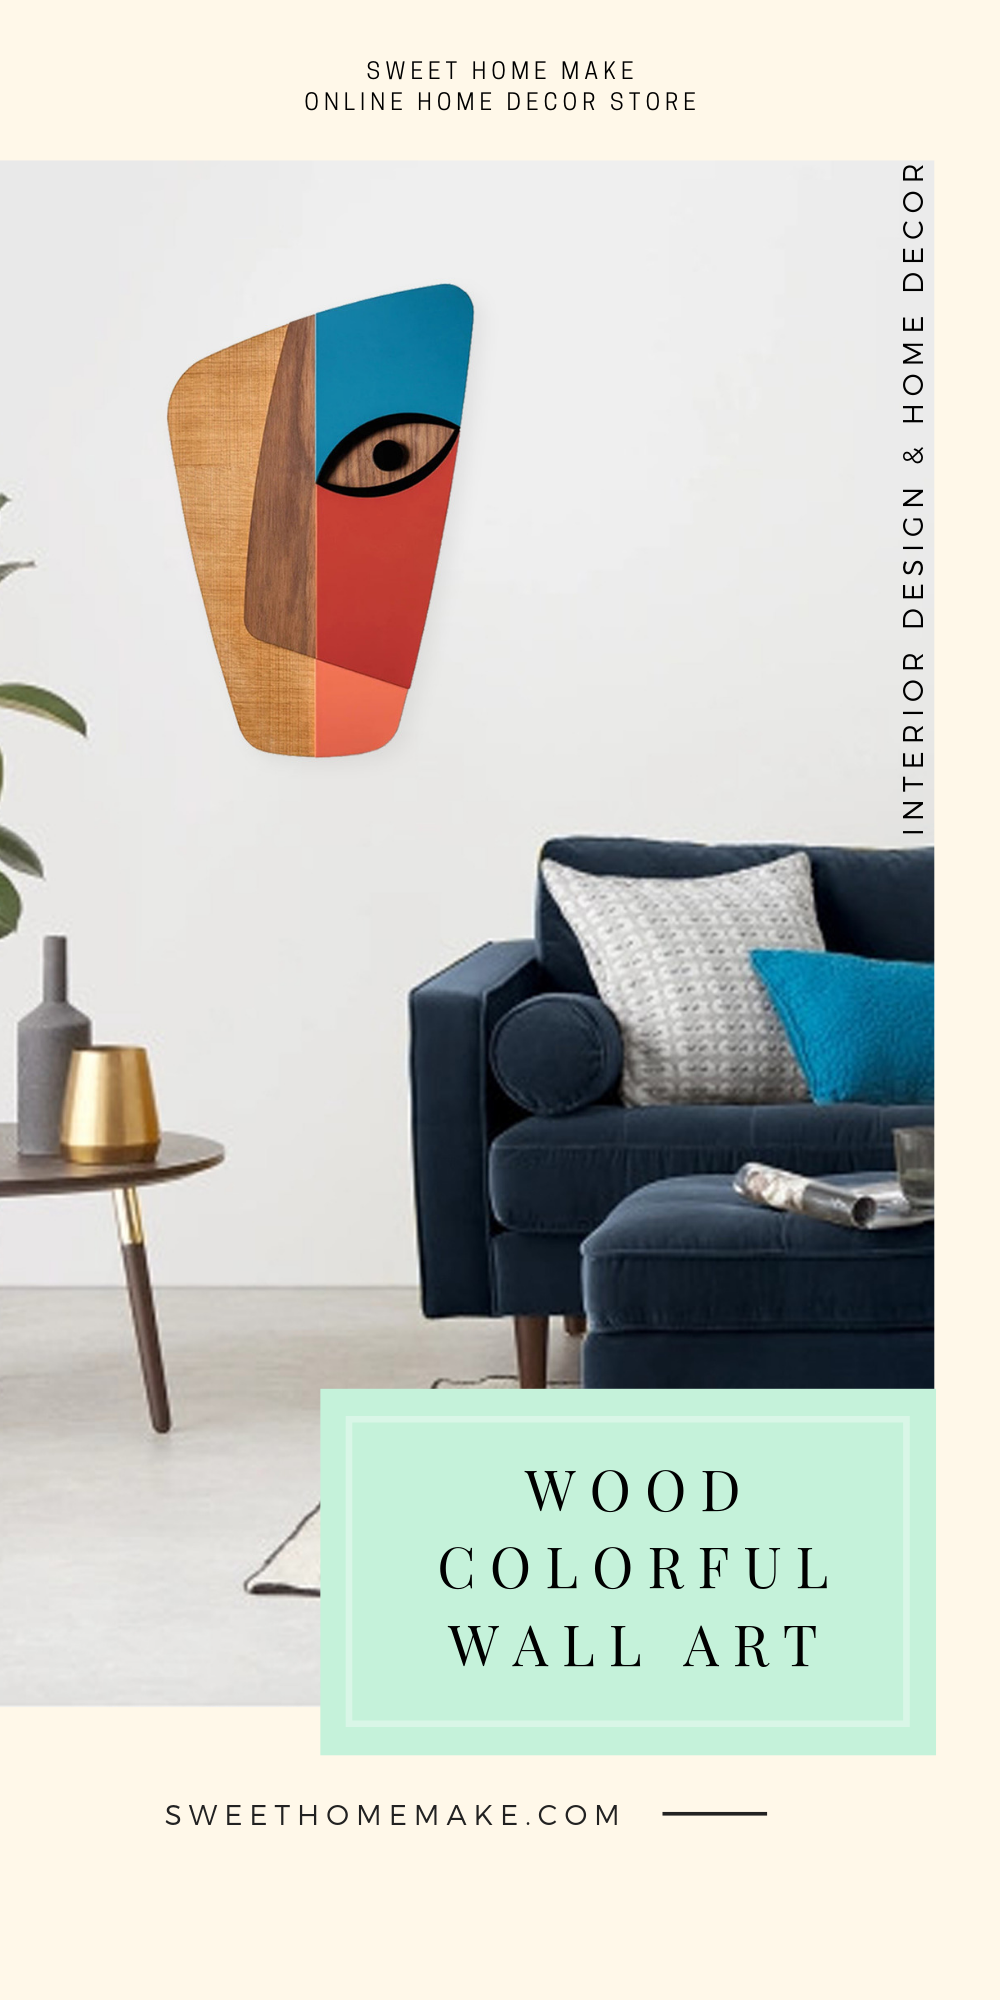 Modern Wall Decor with Abstract Colorful Wood Wall Art